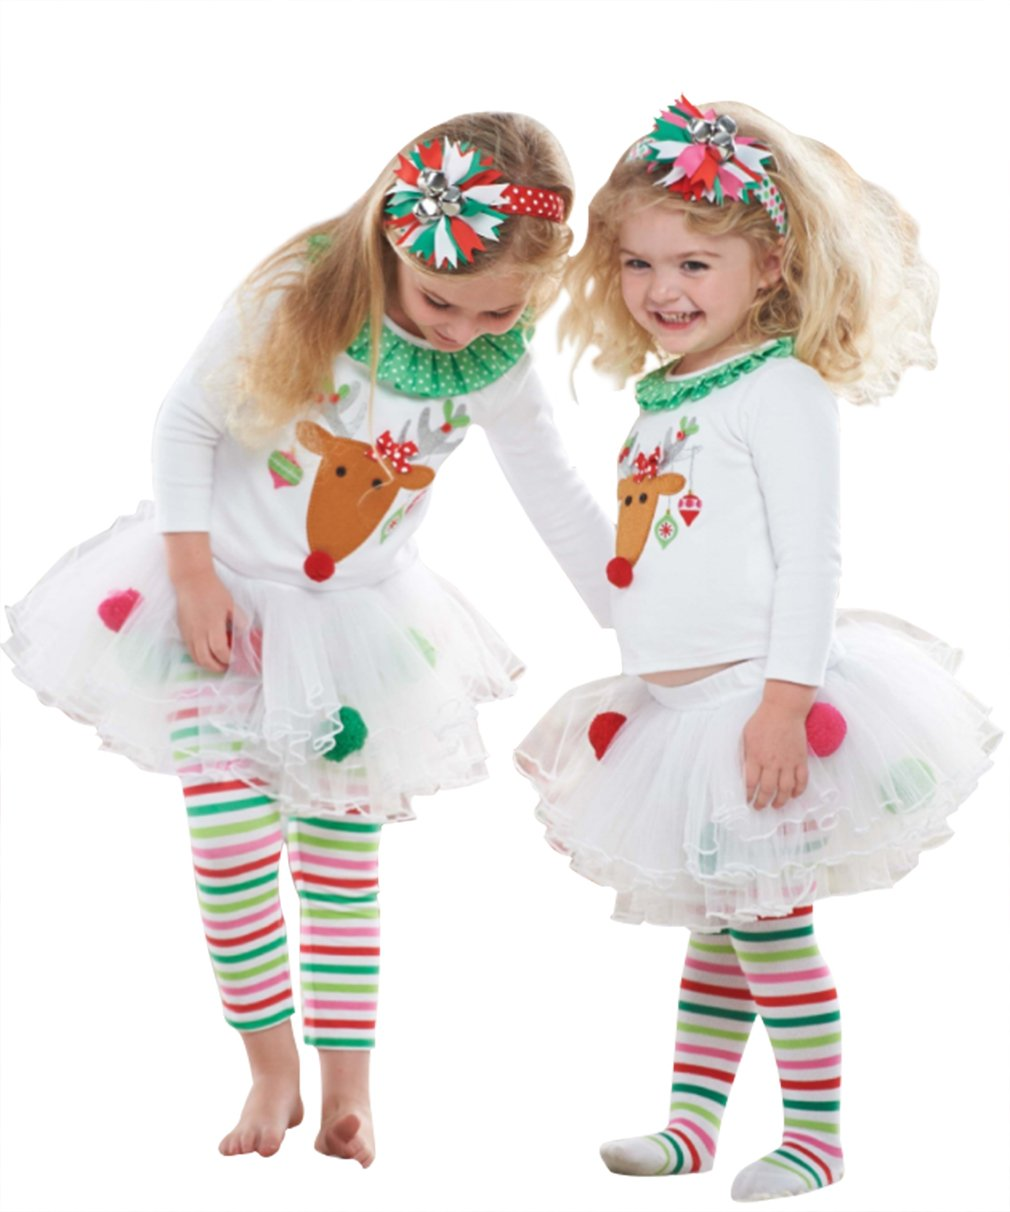 2Pcs Kids Baby Girls Christmas Deer Print T-shirt Tops+Striped Tulle Skirts Pants Clothes Outfits (2-3Years/100cm, White)